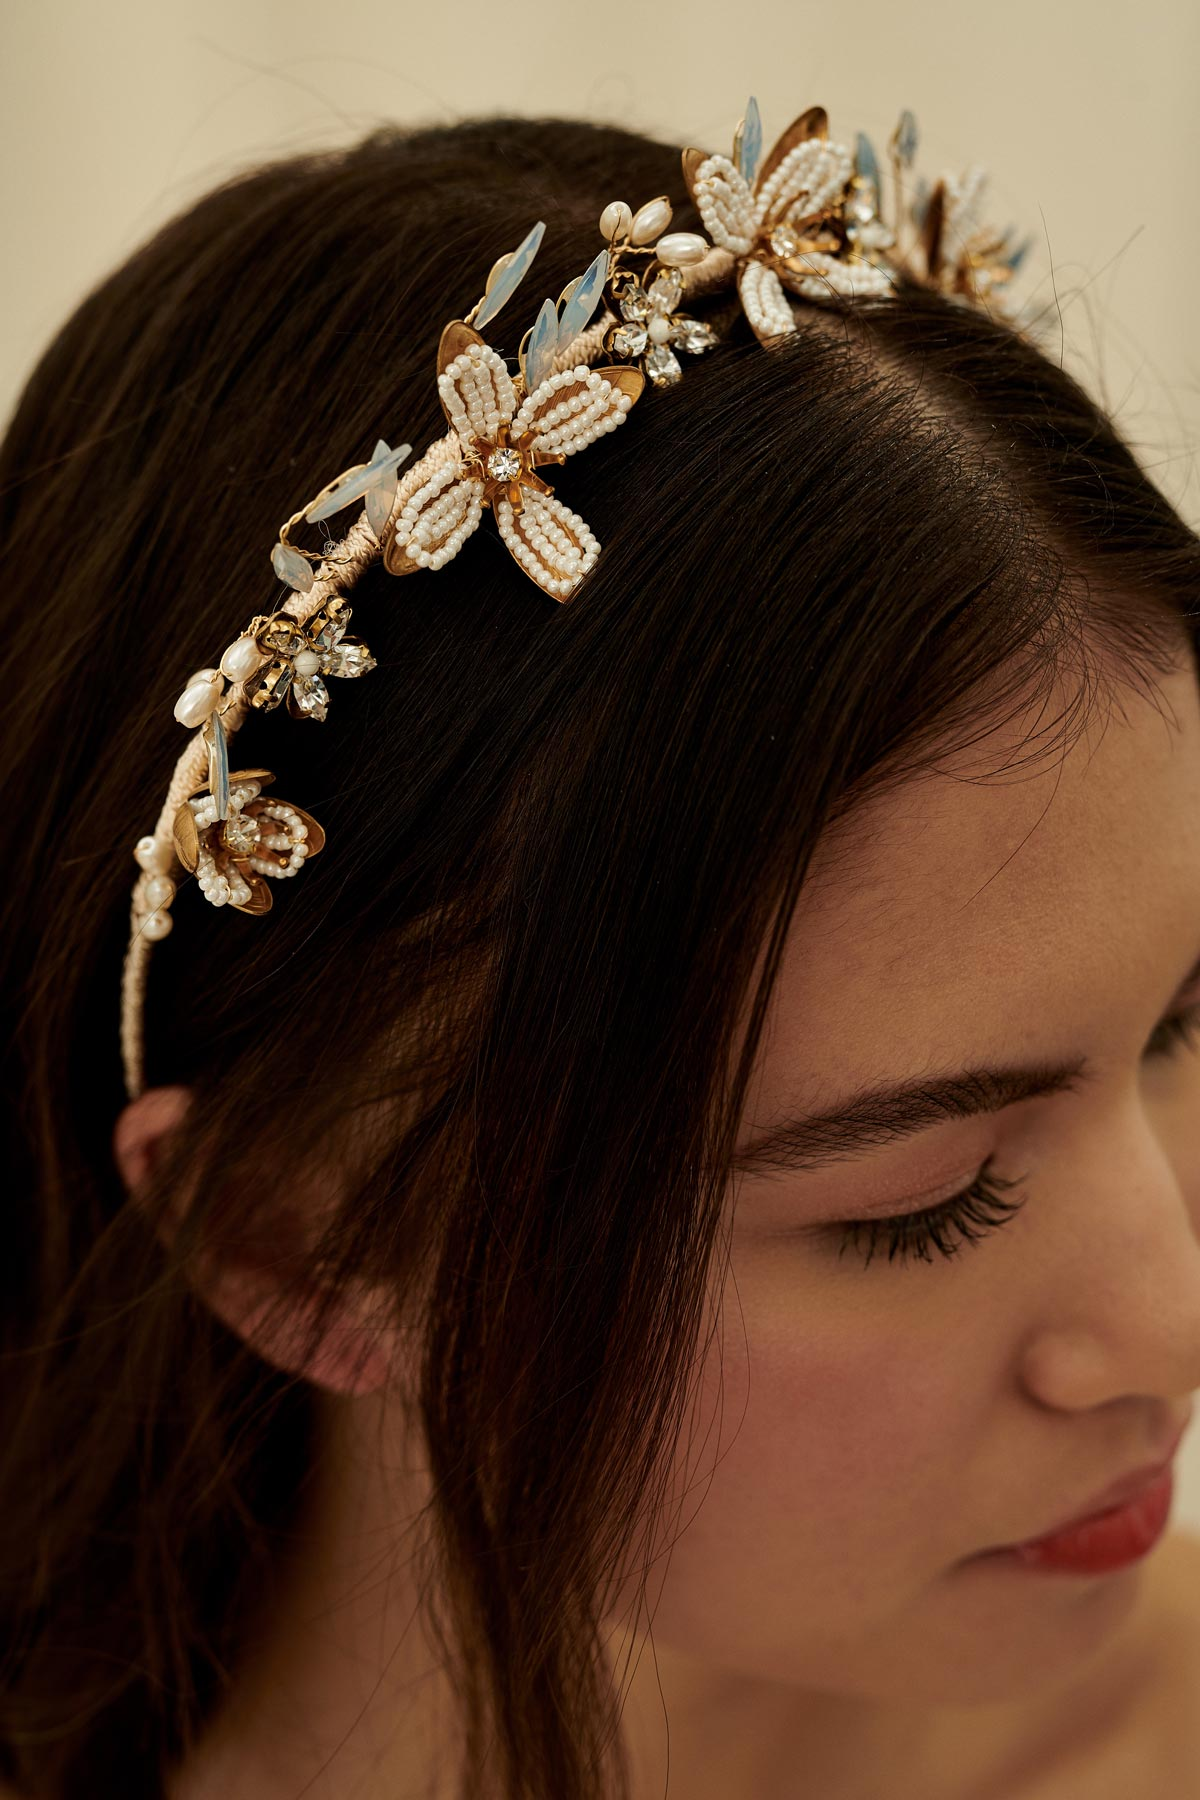 A dreamy boho wedding hair accessory made with intricate brass flowers, glass beads, and opal marquise crystals